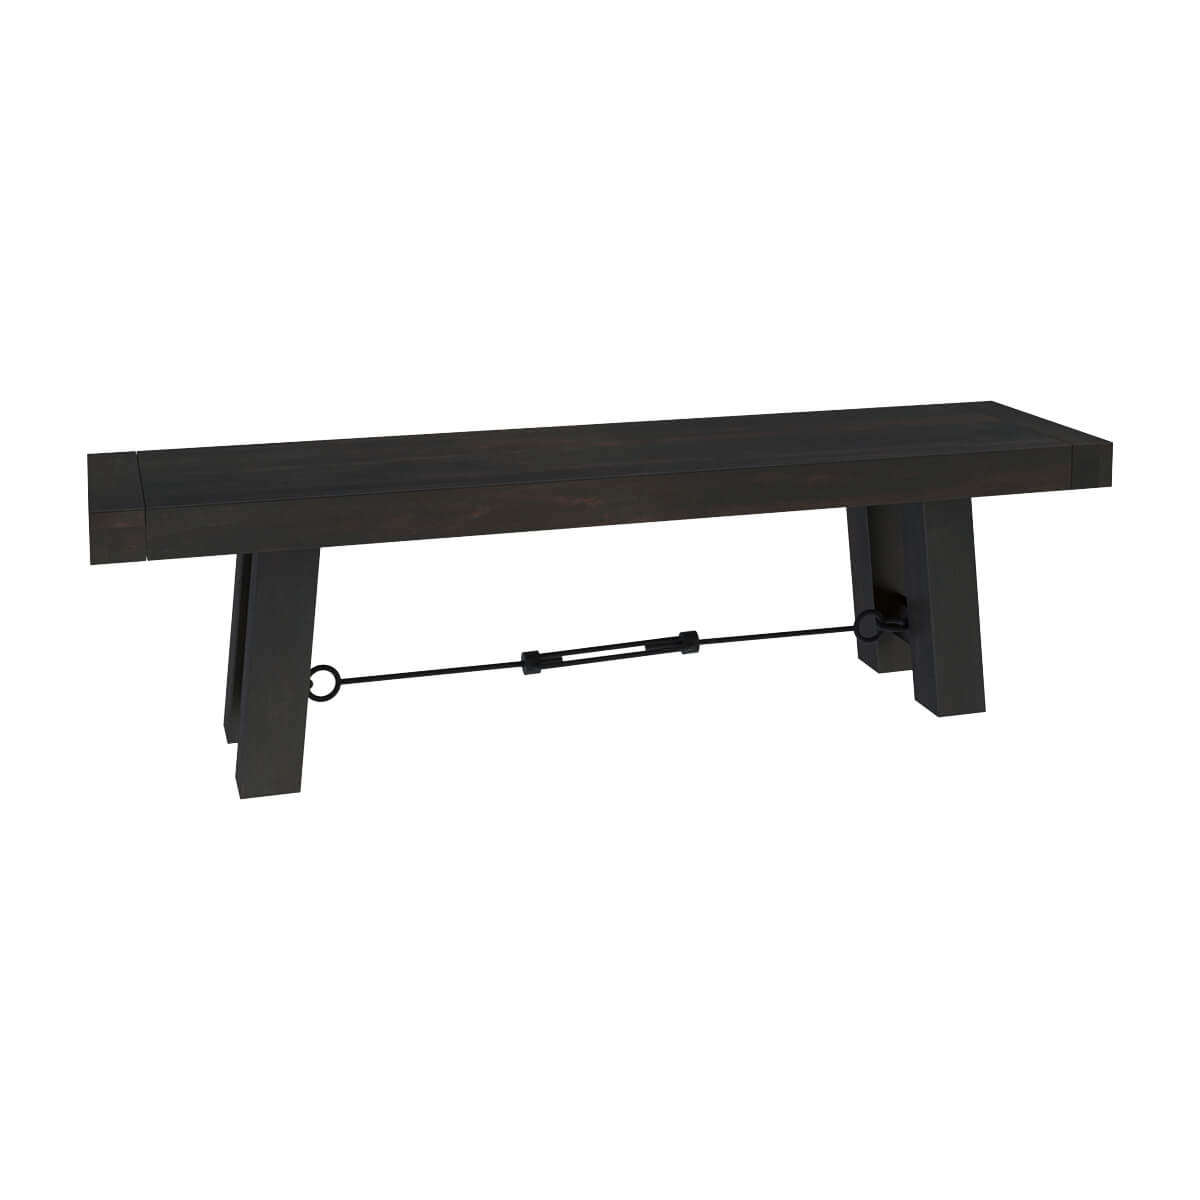 Tirana rustic solid wood and wrought iron dining bench